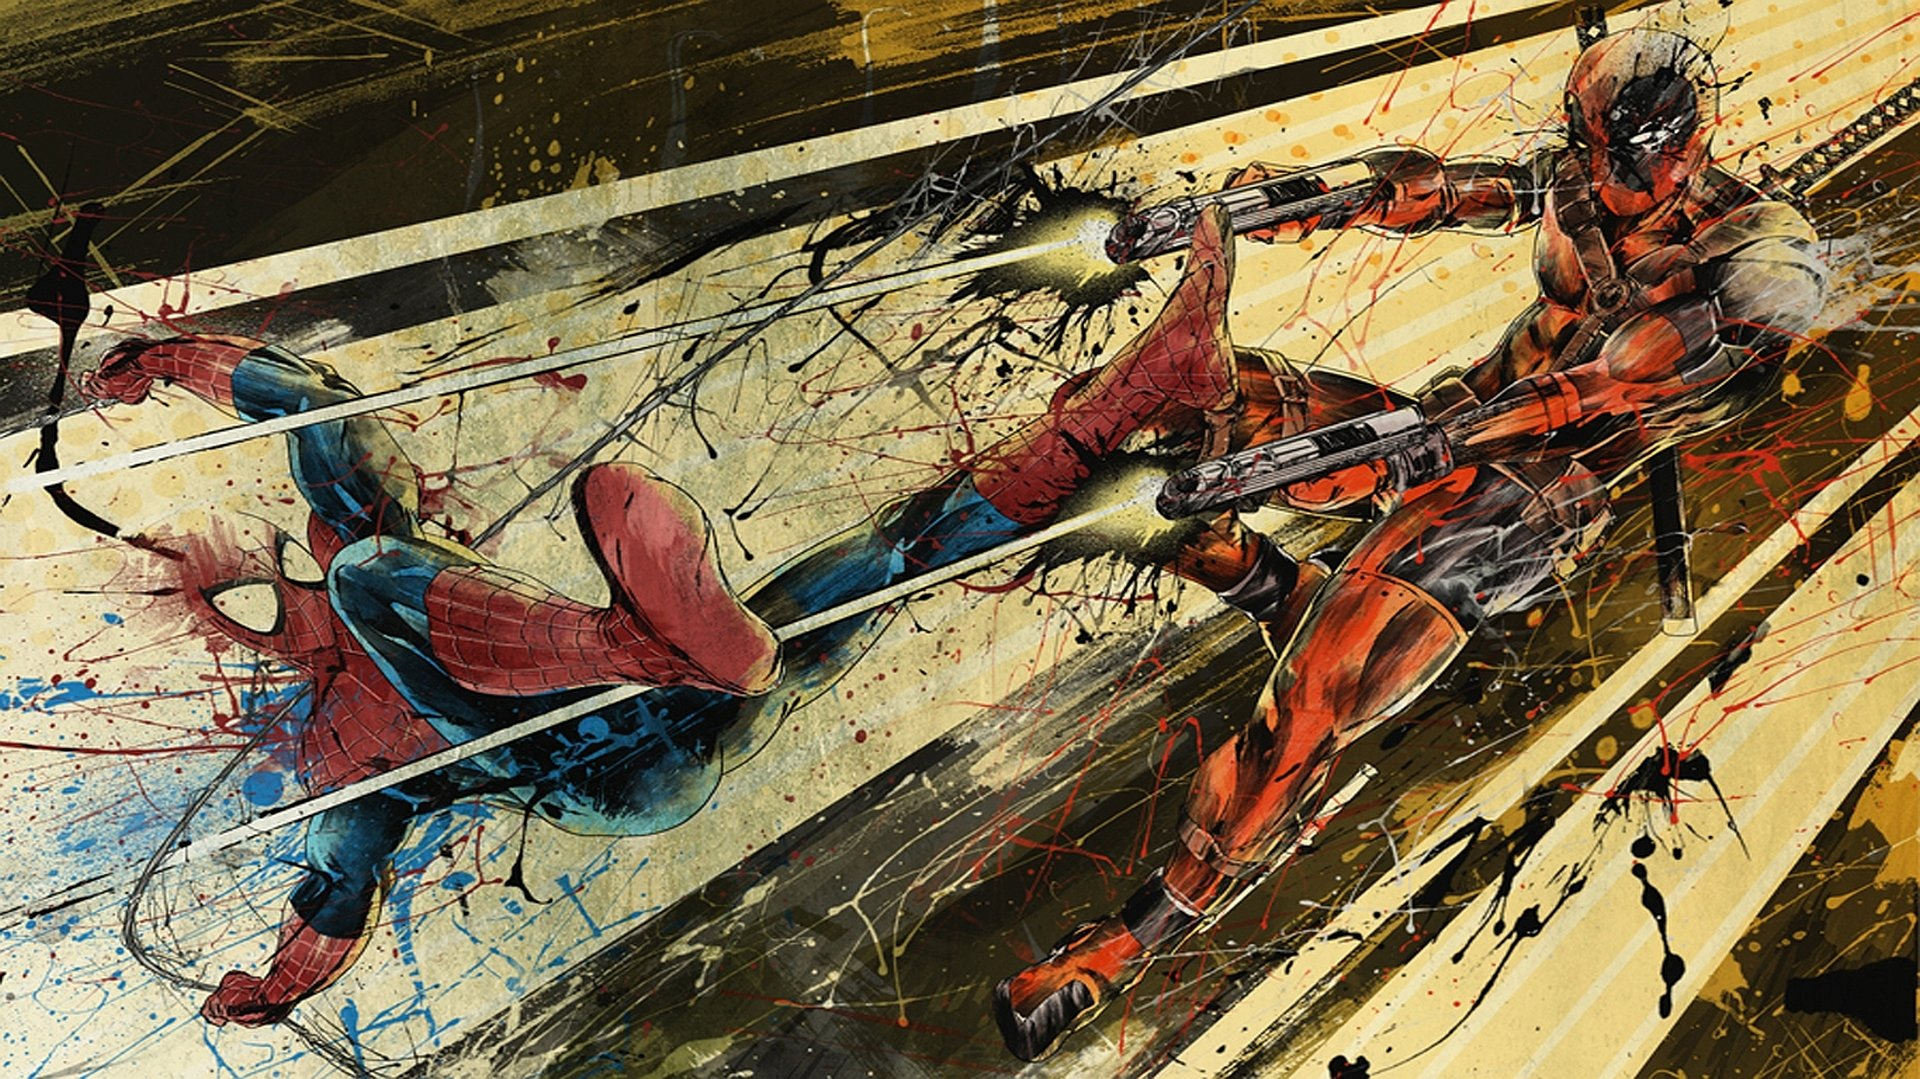 2 Spiderman Vs Deadpool Hd Wallpapers Background Images